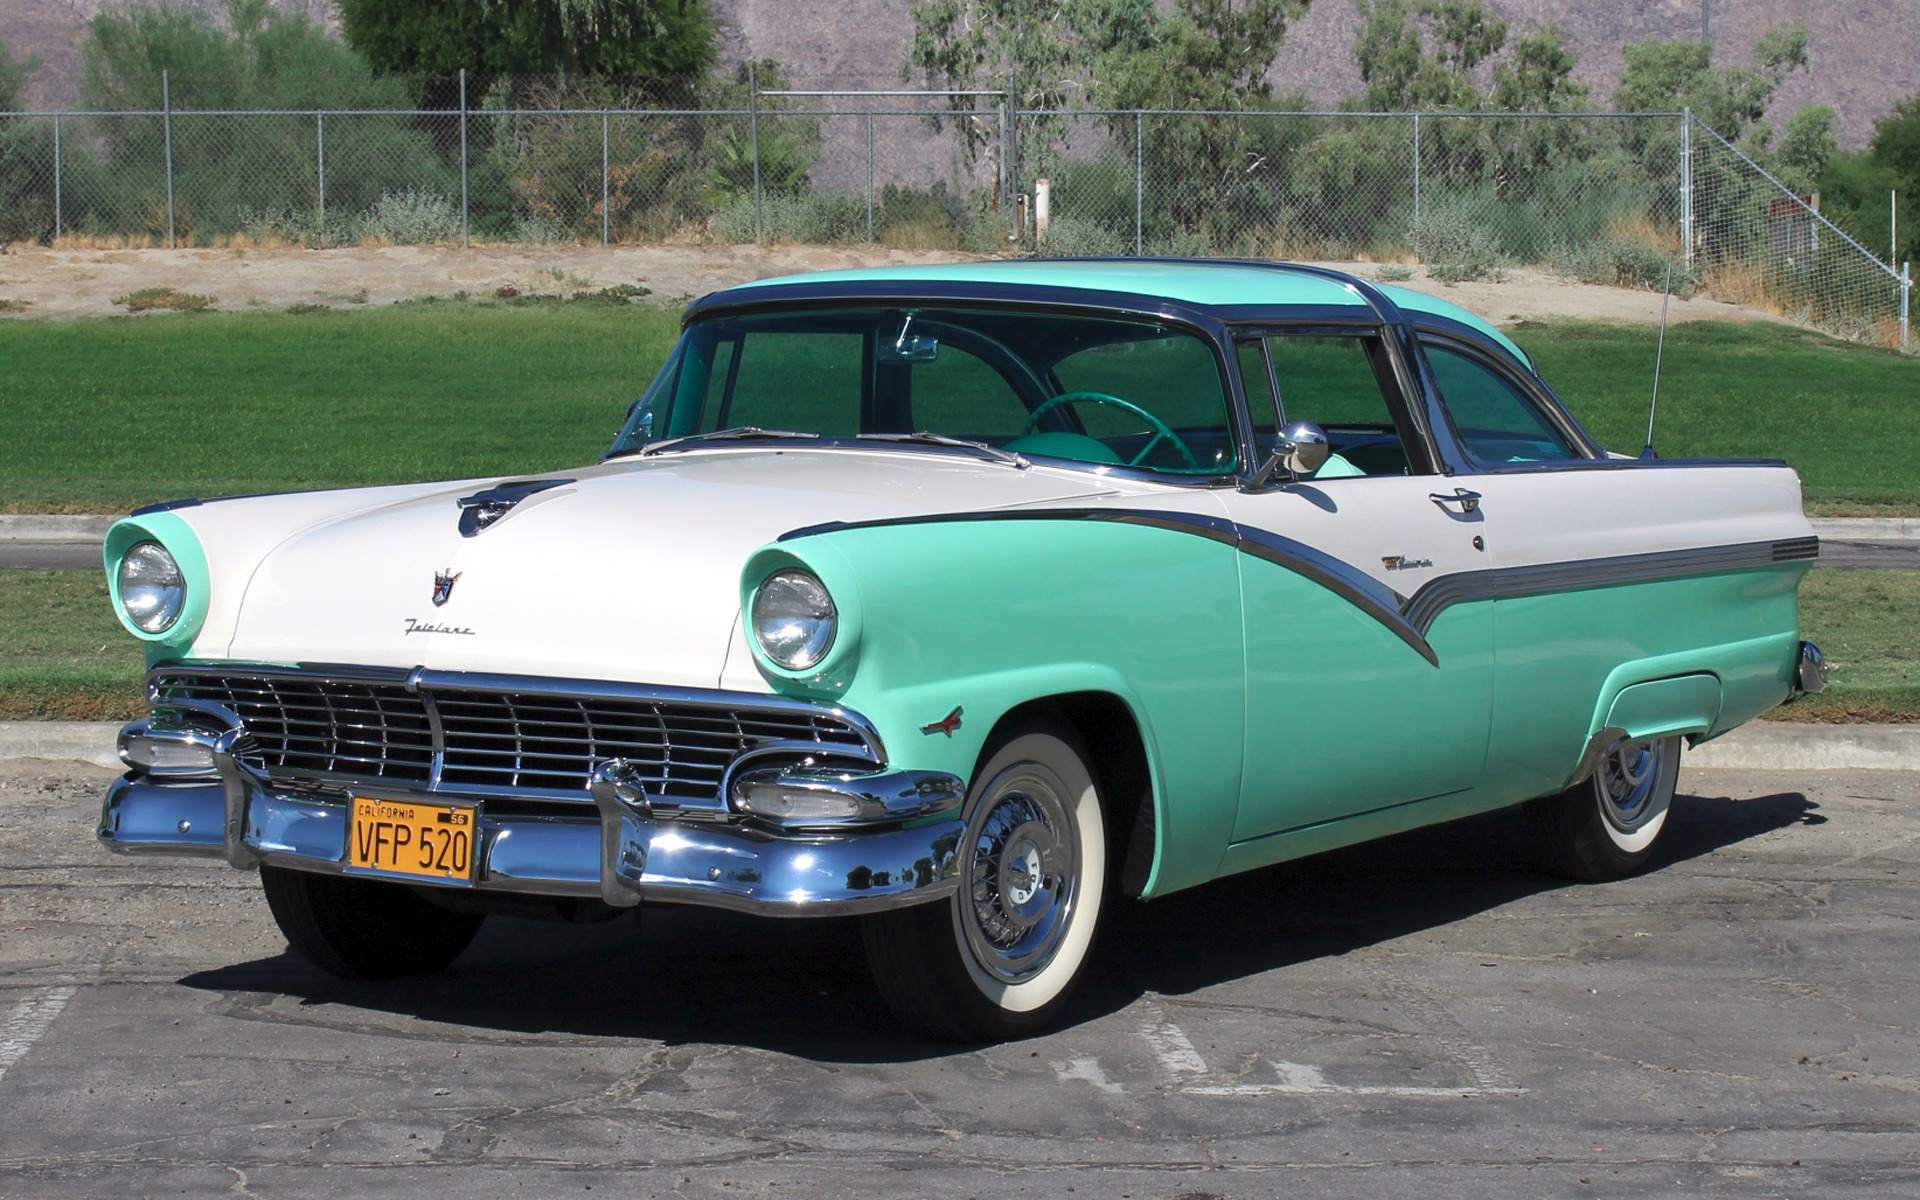 Used 1956 ford fairlane crown victoria